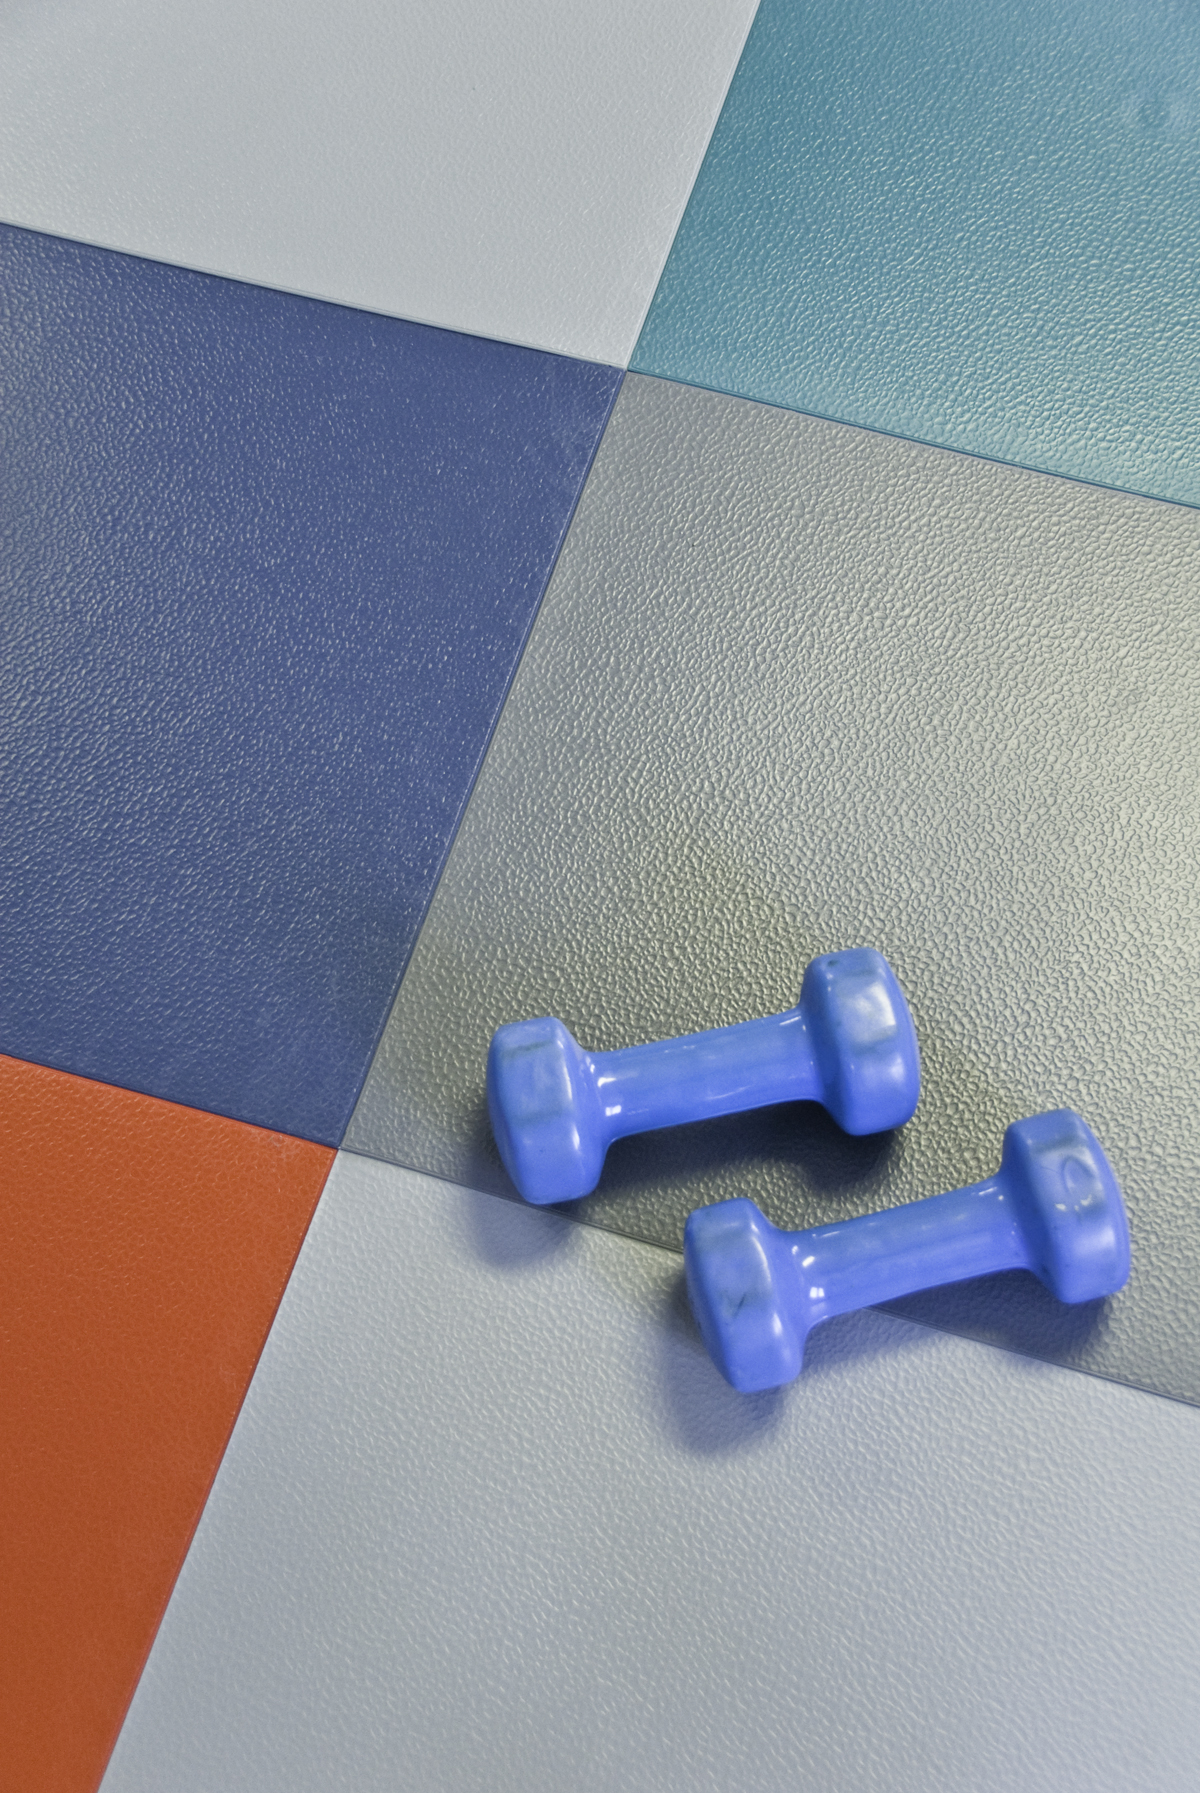 Tuff seal interlocking floor tile featured on nbcs today show tuff seal interlocking floor tile 03tuff seal interlocking floor tile used for home and commercial sports and fitness areas and facilities dailygadgetfo Gallery